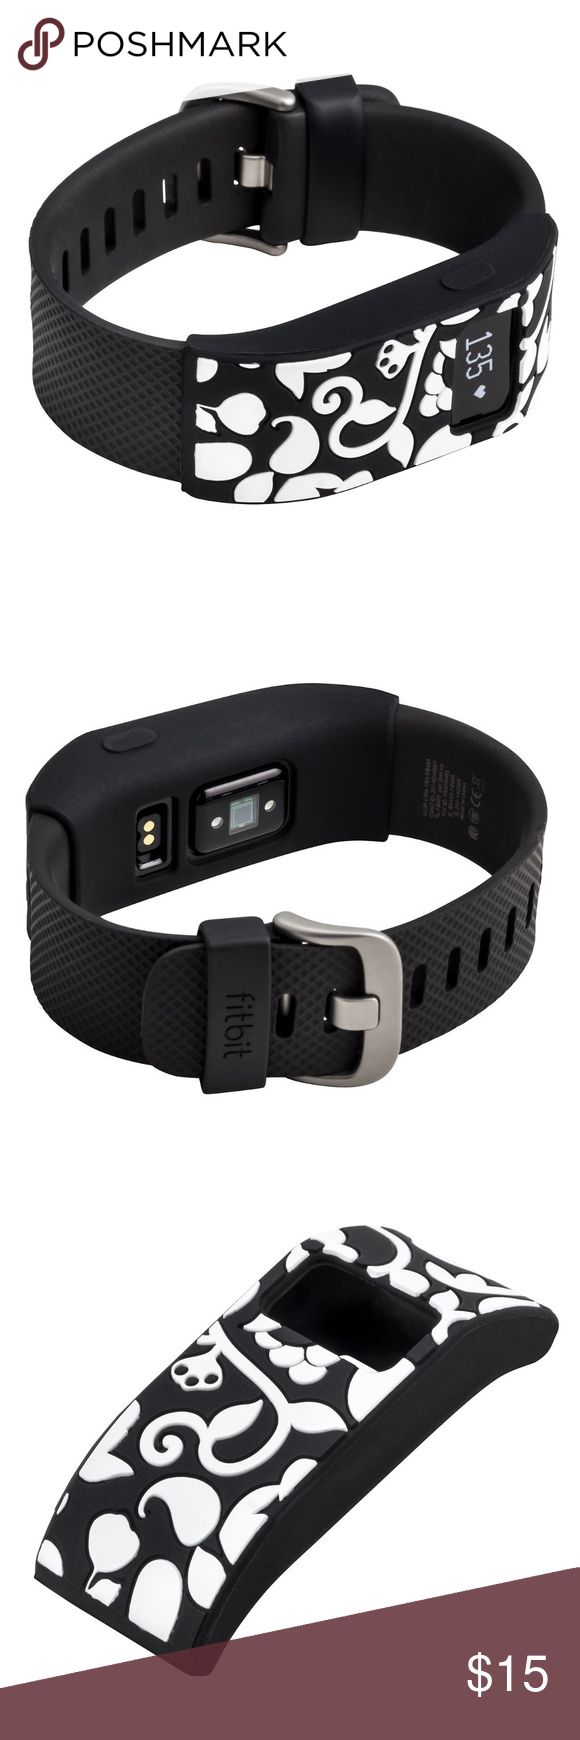 Fitbit Charge / HR Slim Designer Sleeve Cover NEW! Track your steps in style wherever you go! Slides easily into place protecting the middle of your band Fits Fitbit® Charge and Charge HR. Does NOT include fitness tracker or band. Fits both small and large bands Turns your fitness tracker band into a fashion statement. French Bull Accessories Watches